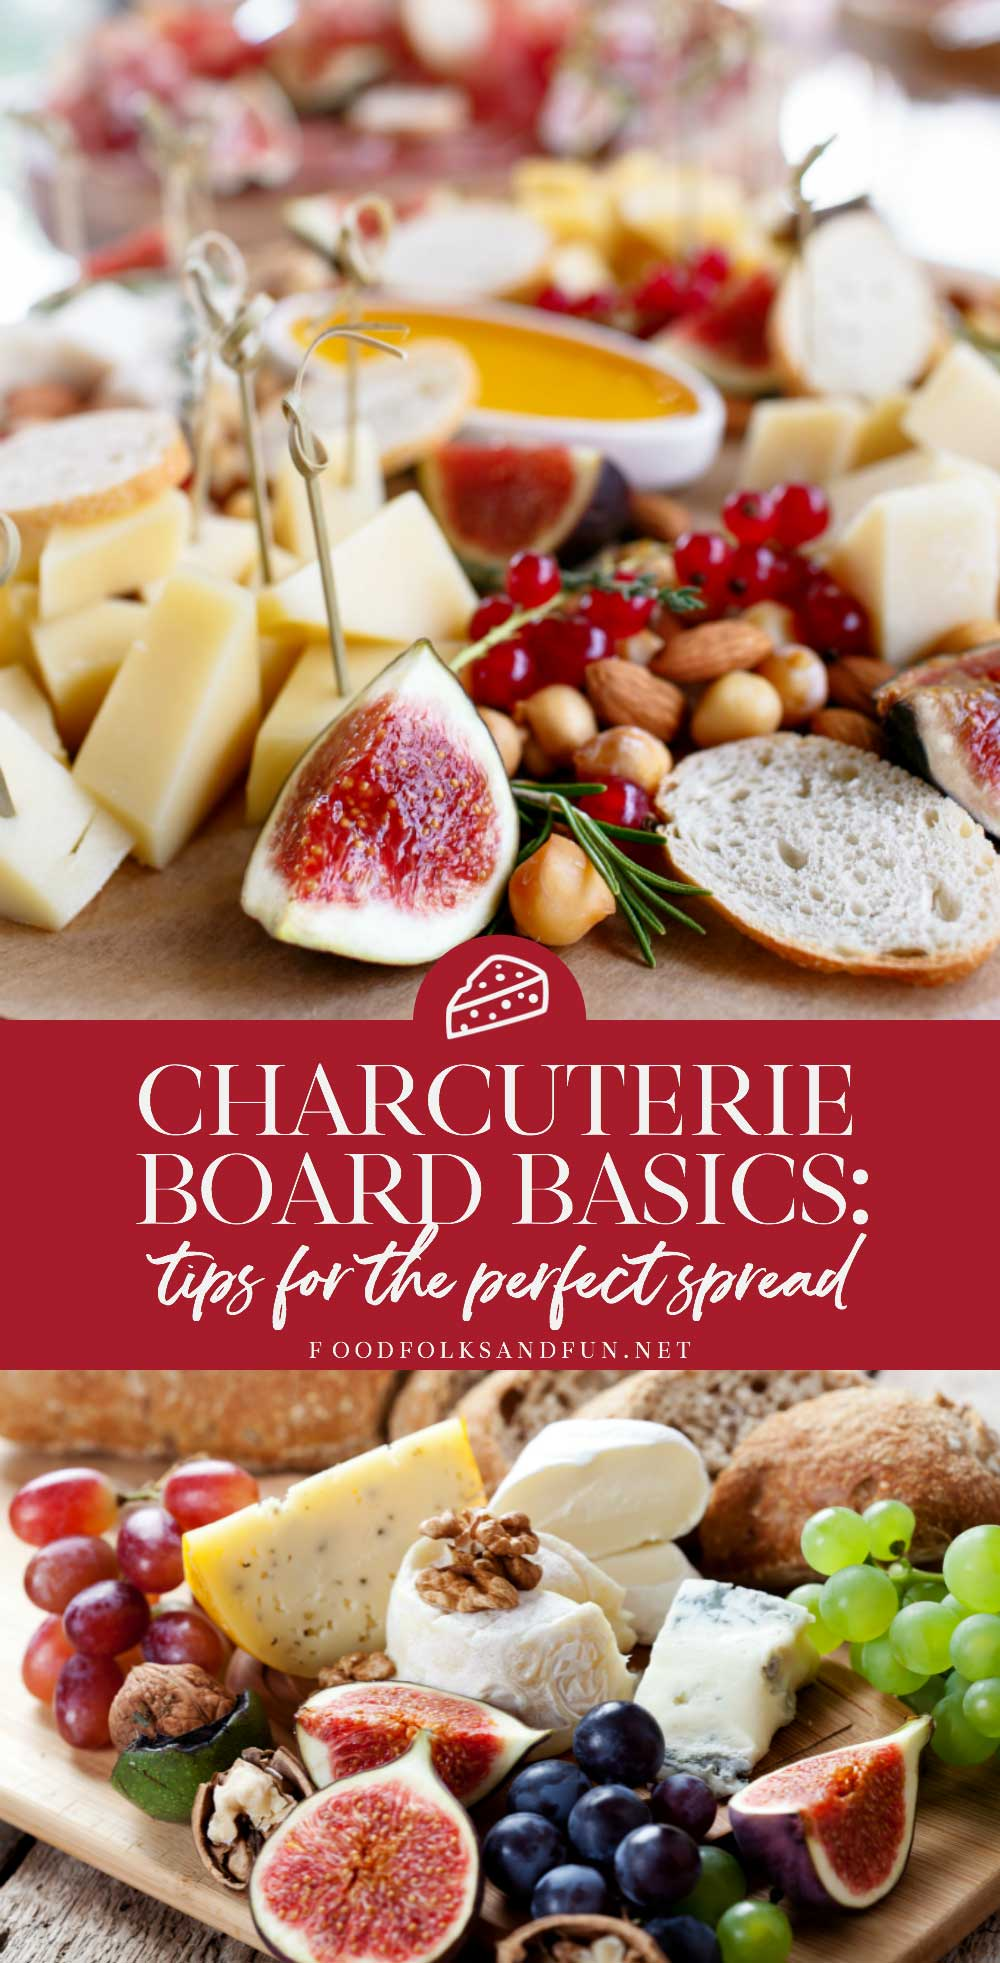 See how to make the best spread of fine imported cheese served with meat, fruit, nuts, bread, and crackers for Thanksgiving, Christmas, or any get together in this Charcuterie Board Basics: Tips for the Perfect Spread post.